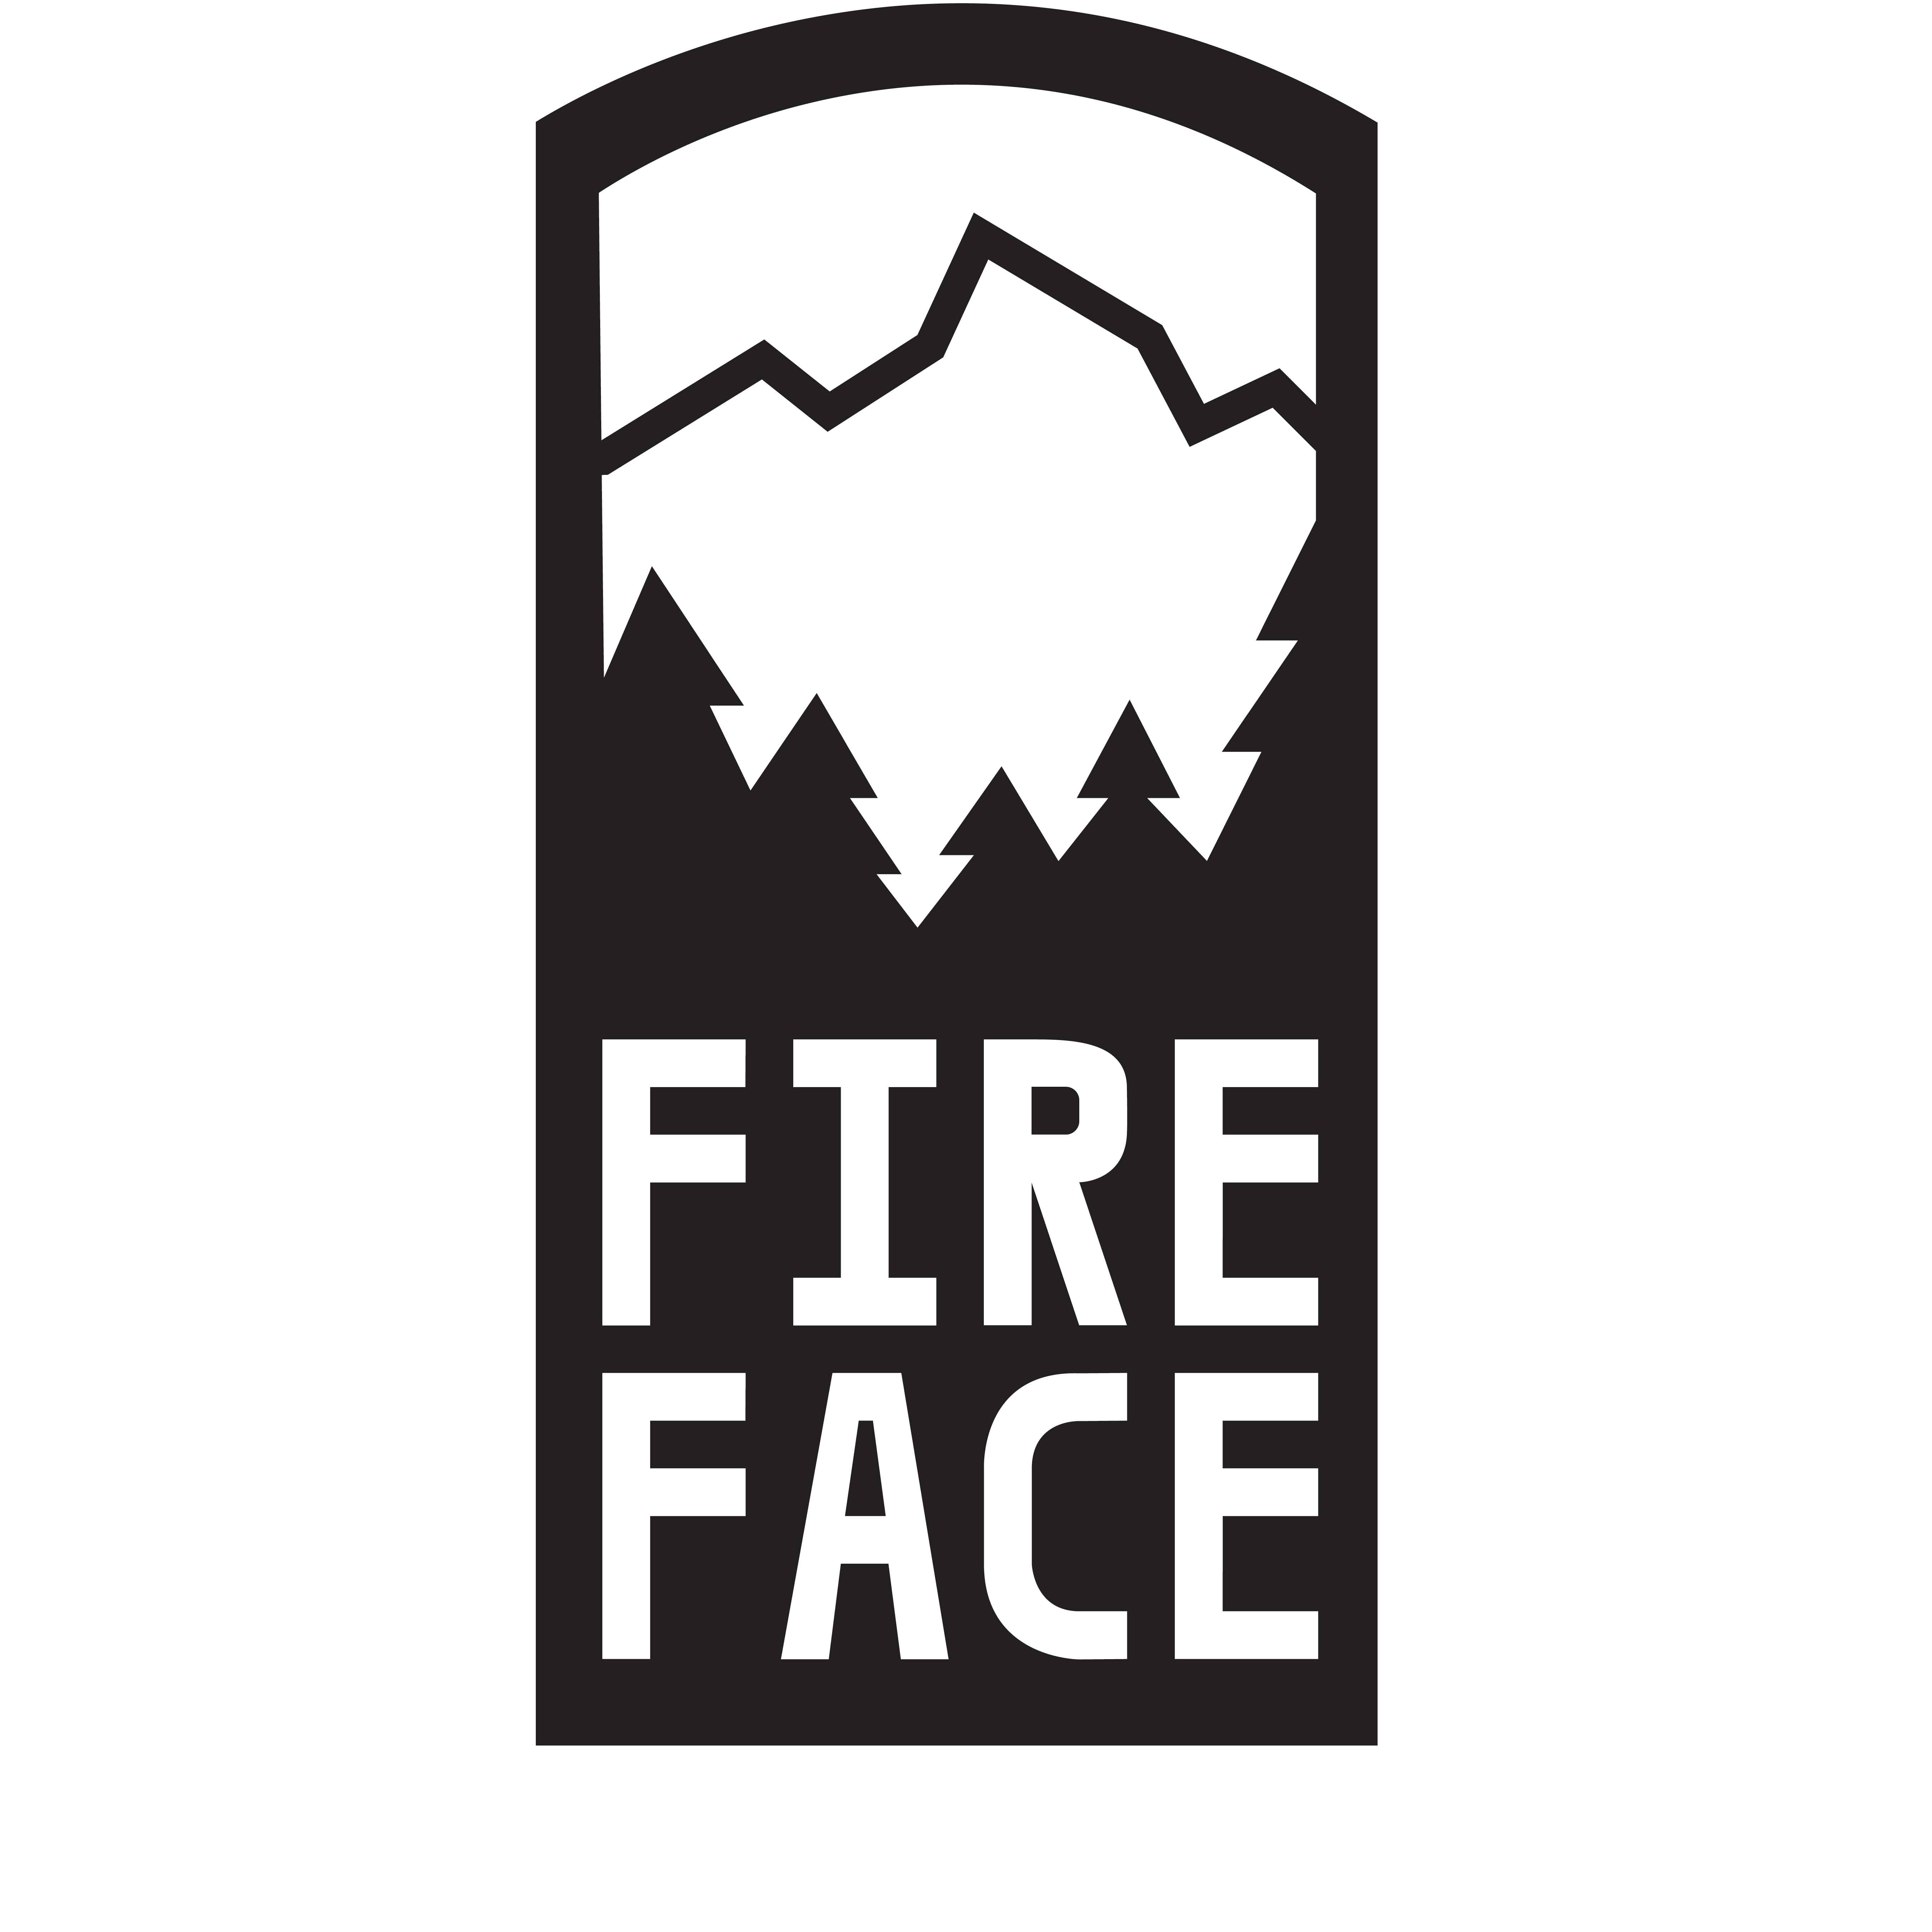 Image of the new Fire Face logo